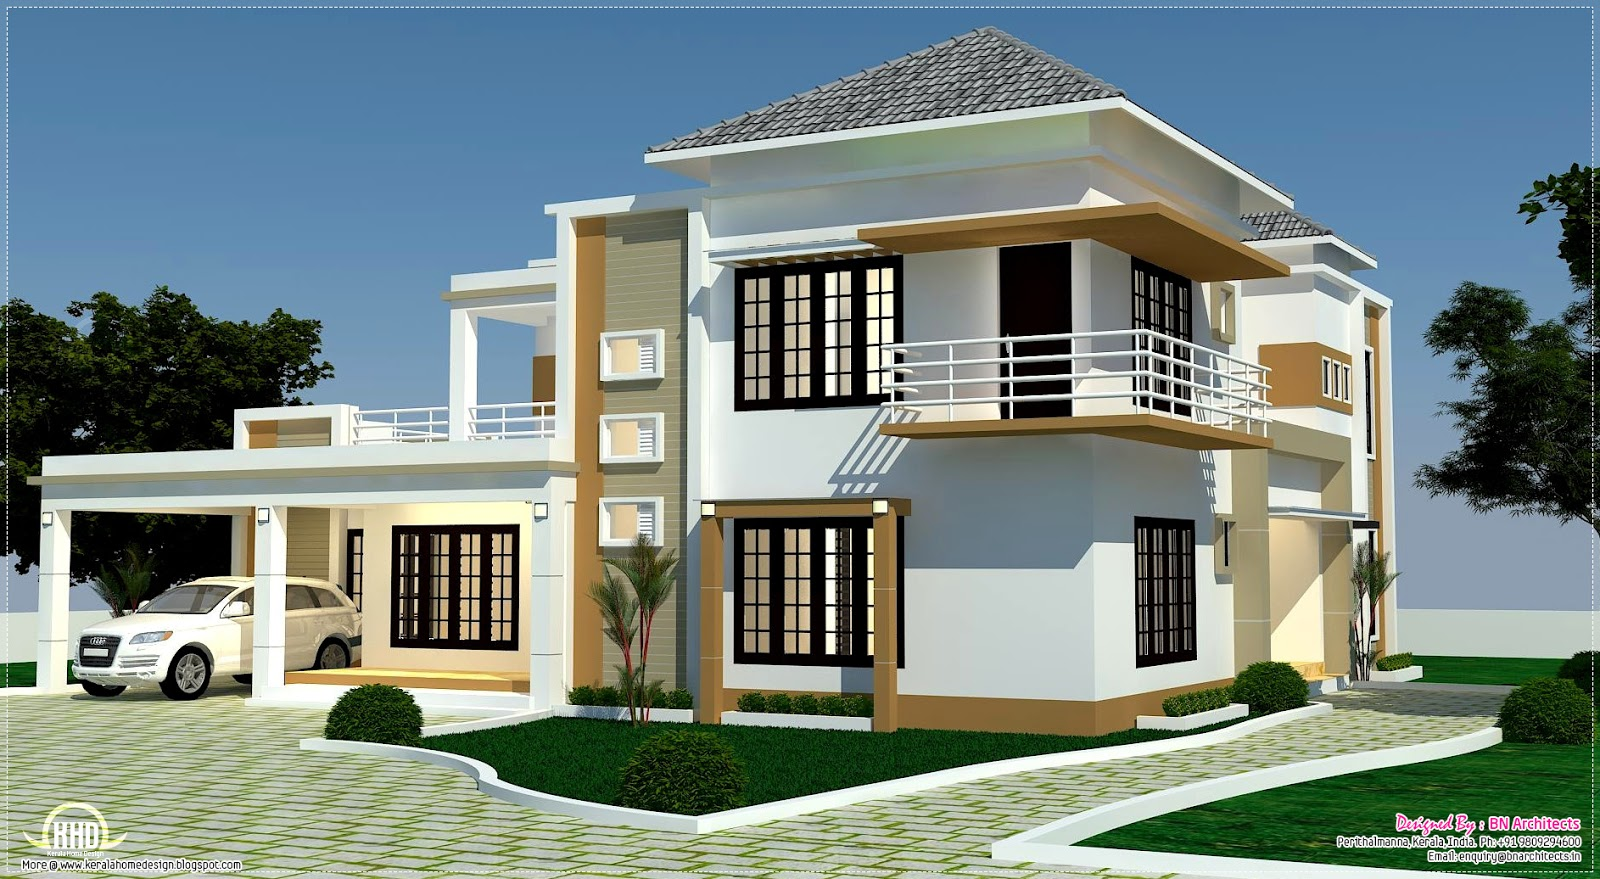 House Plans With A View Of Floor Plan 3d Views And Interiors Of 4 Bedroom Villa